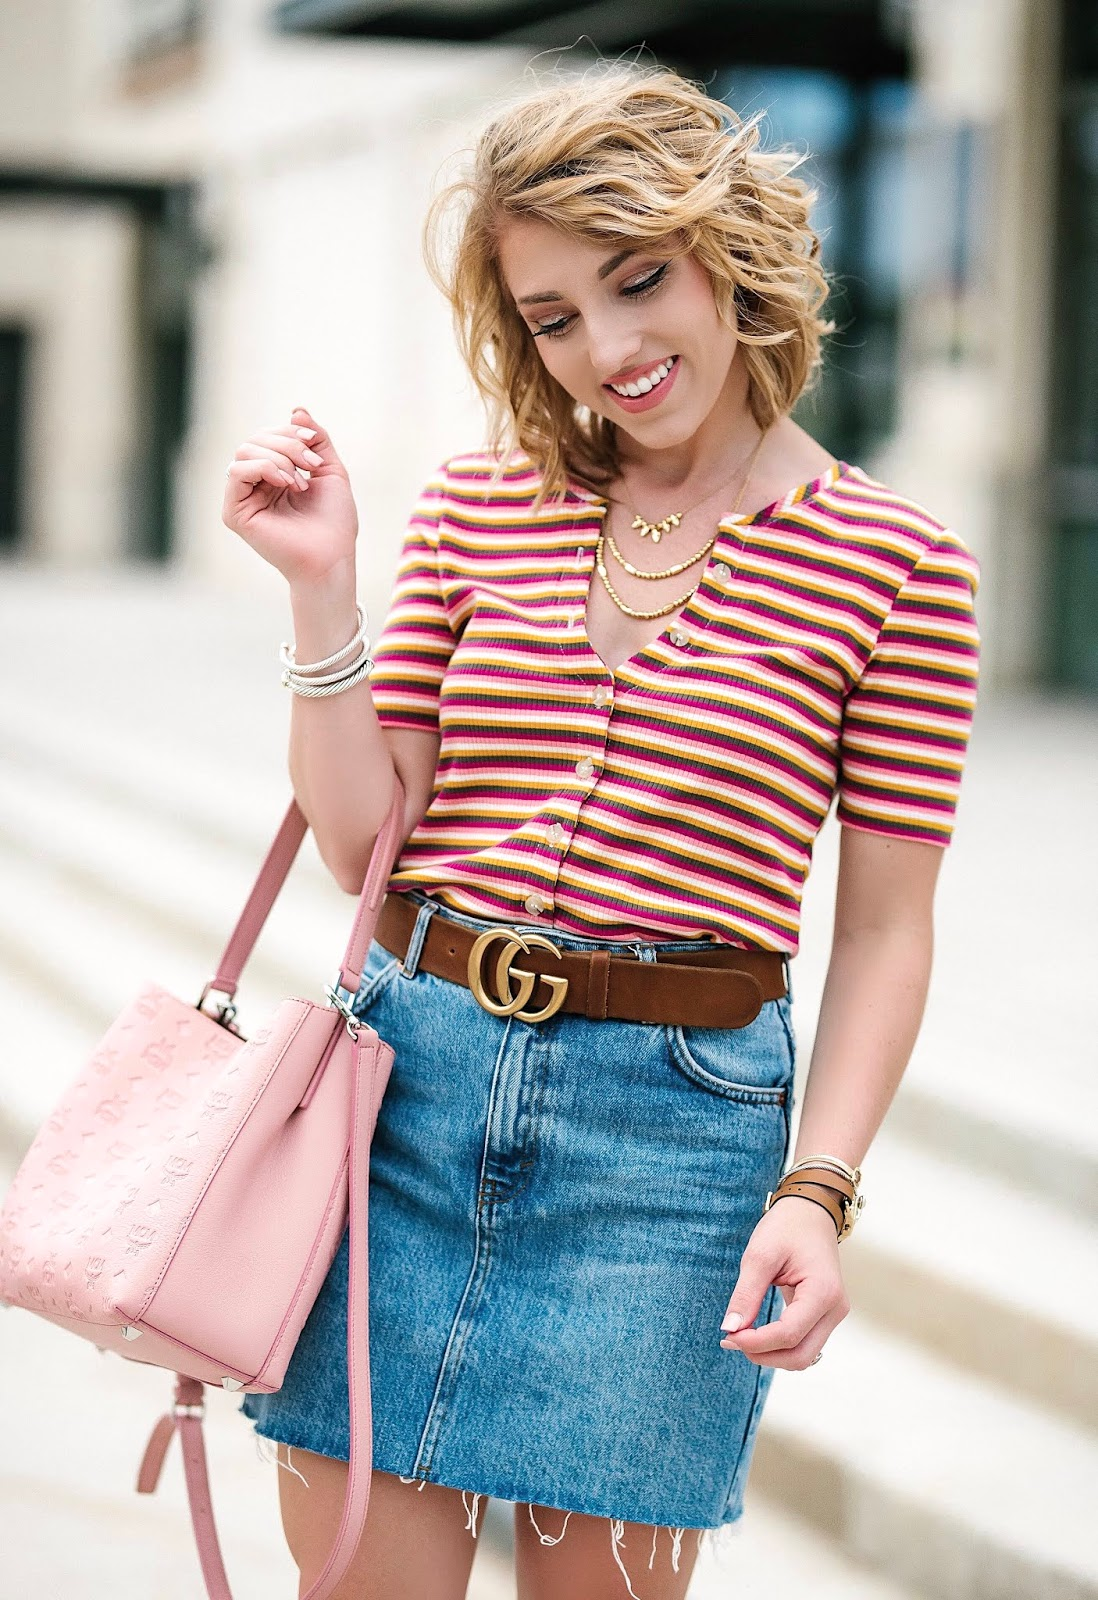 The Perfect Transition to Fall Look: Denim Skirt + Striped Sweater and Mules (All under $100) - Something Delightful Blog